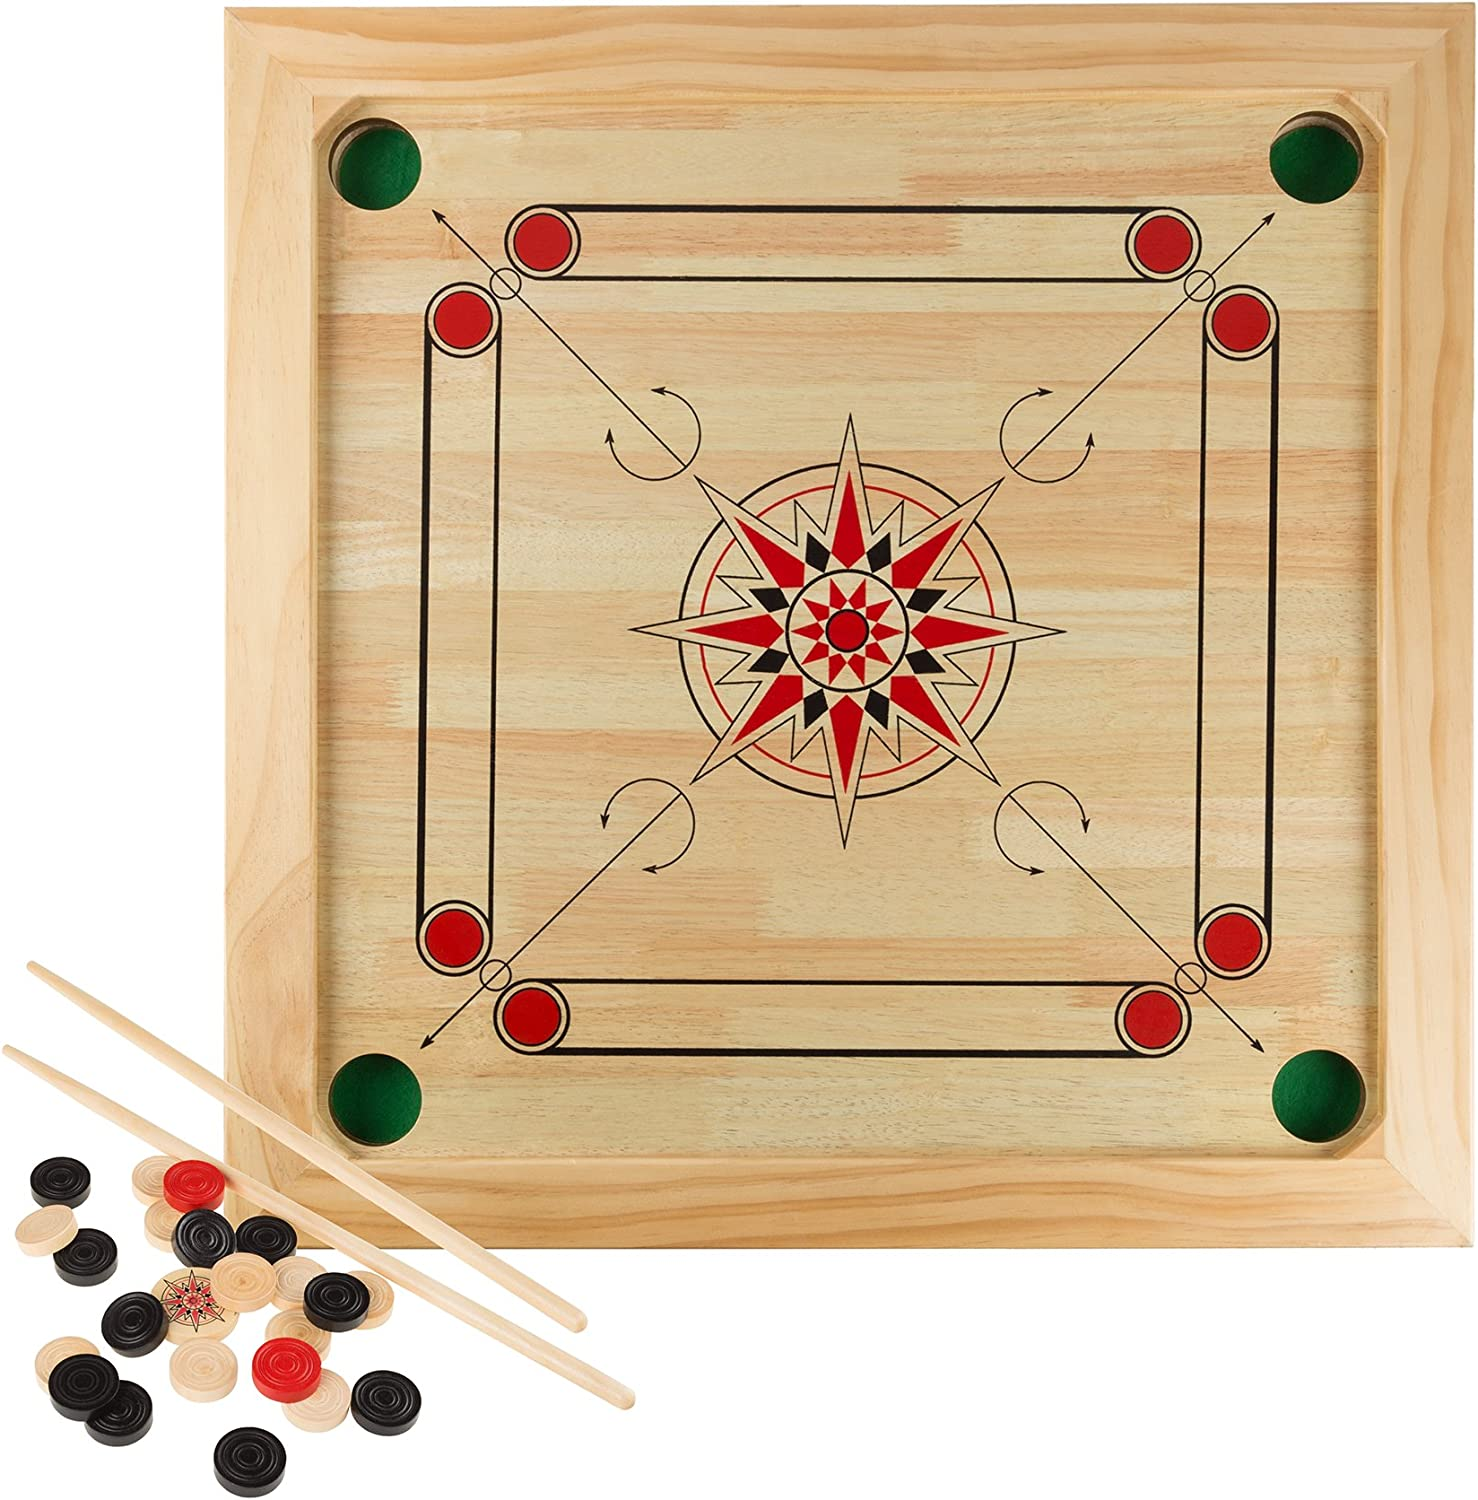 Amazon Com Carrom Board Game Classic Strike And Pocket Table Game With Cue Sticks Coins Queen And Striker For Adults Kids Boys And Girls By Hey Play Toys Games